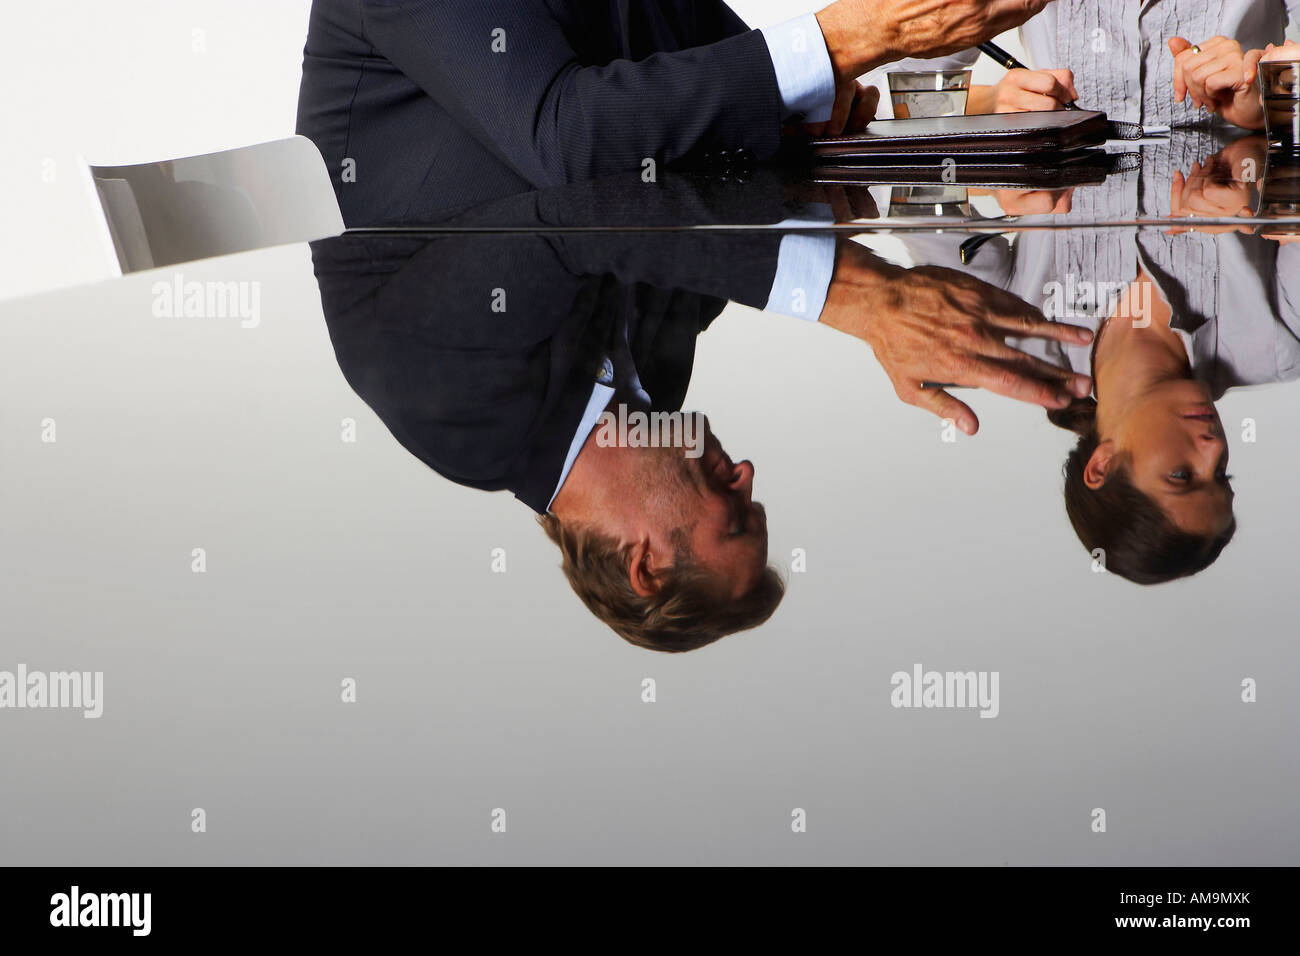 Two business people's reflection in a table. - Stock Image